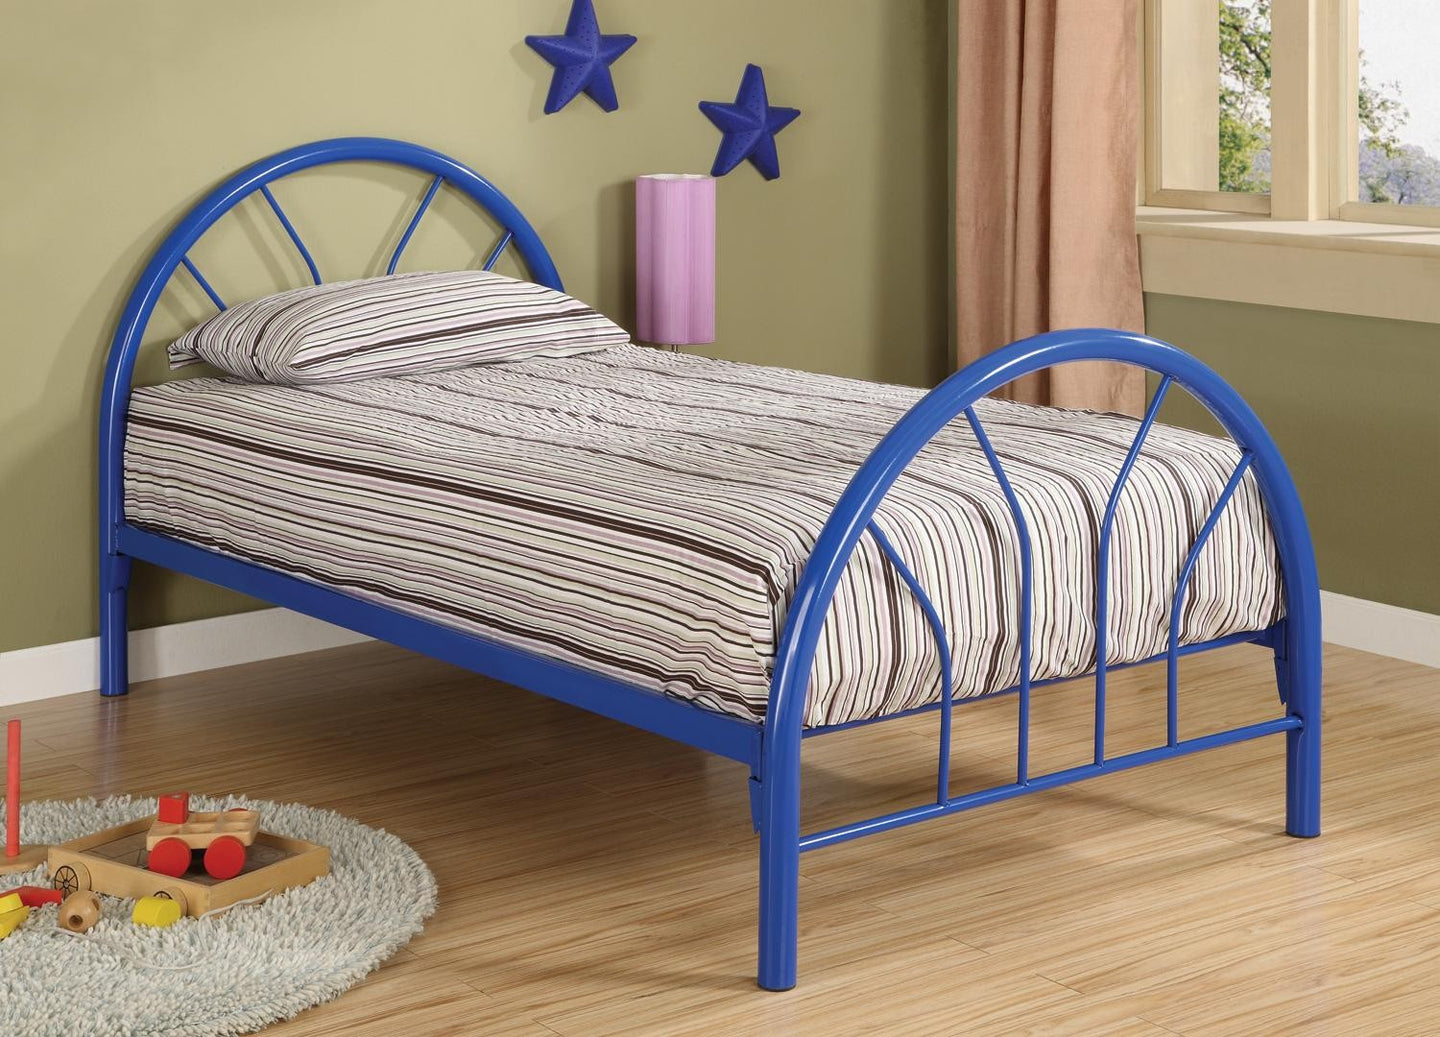 Round Metal Twin Bed in blue